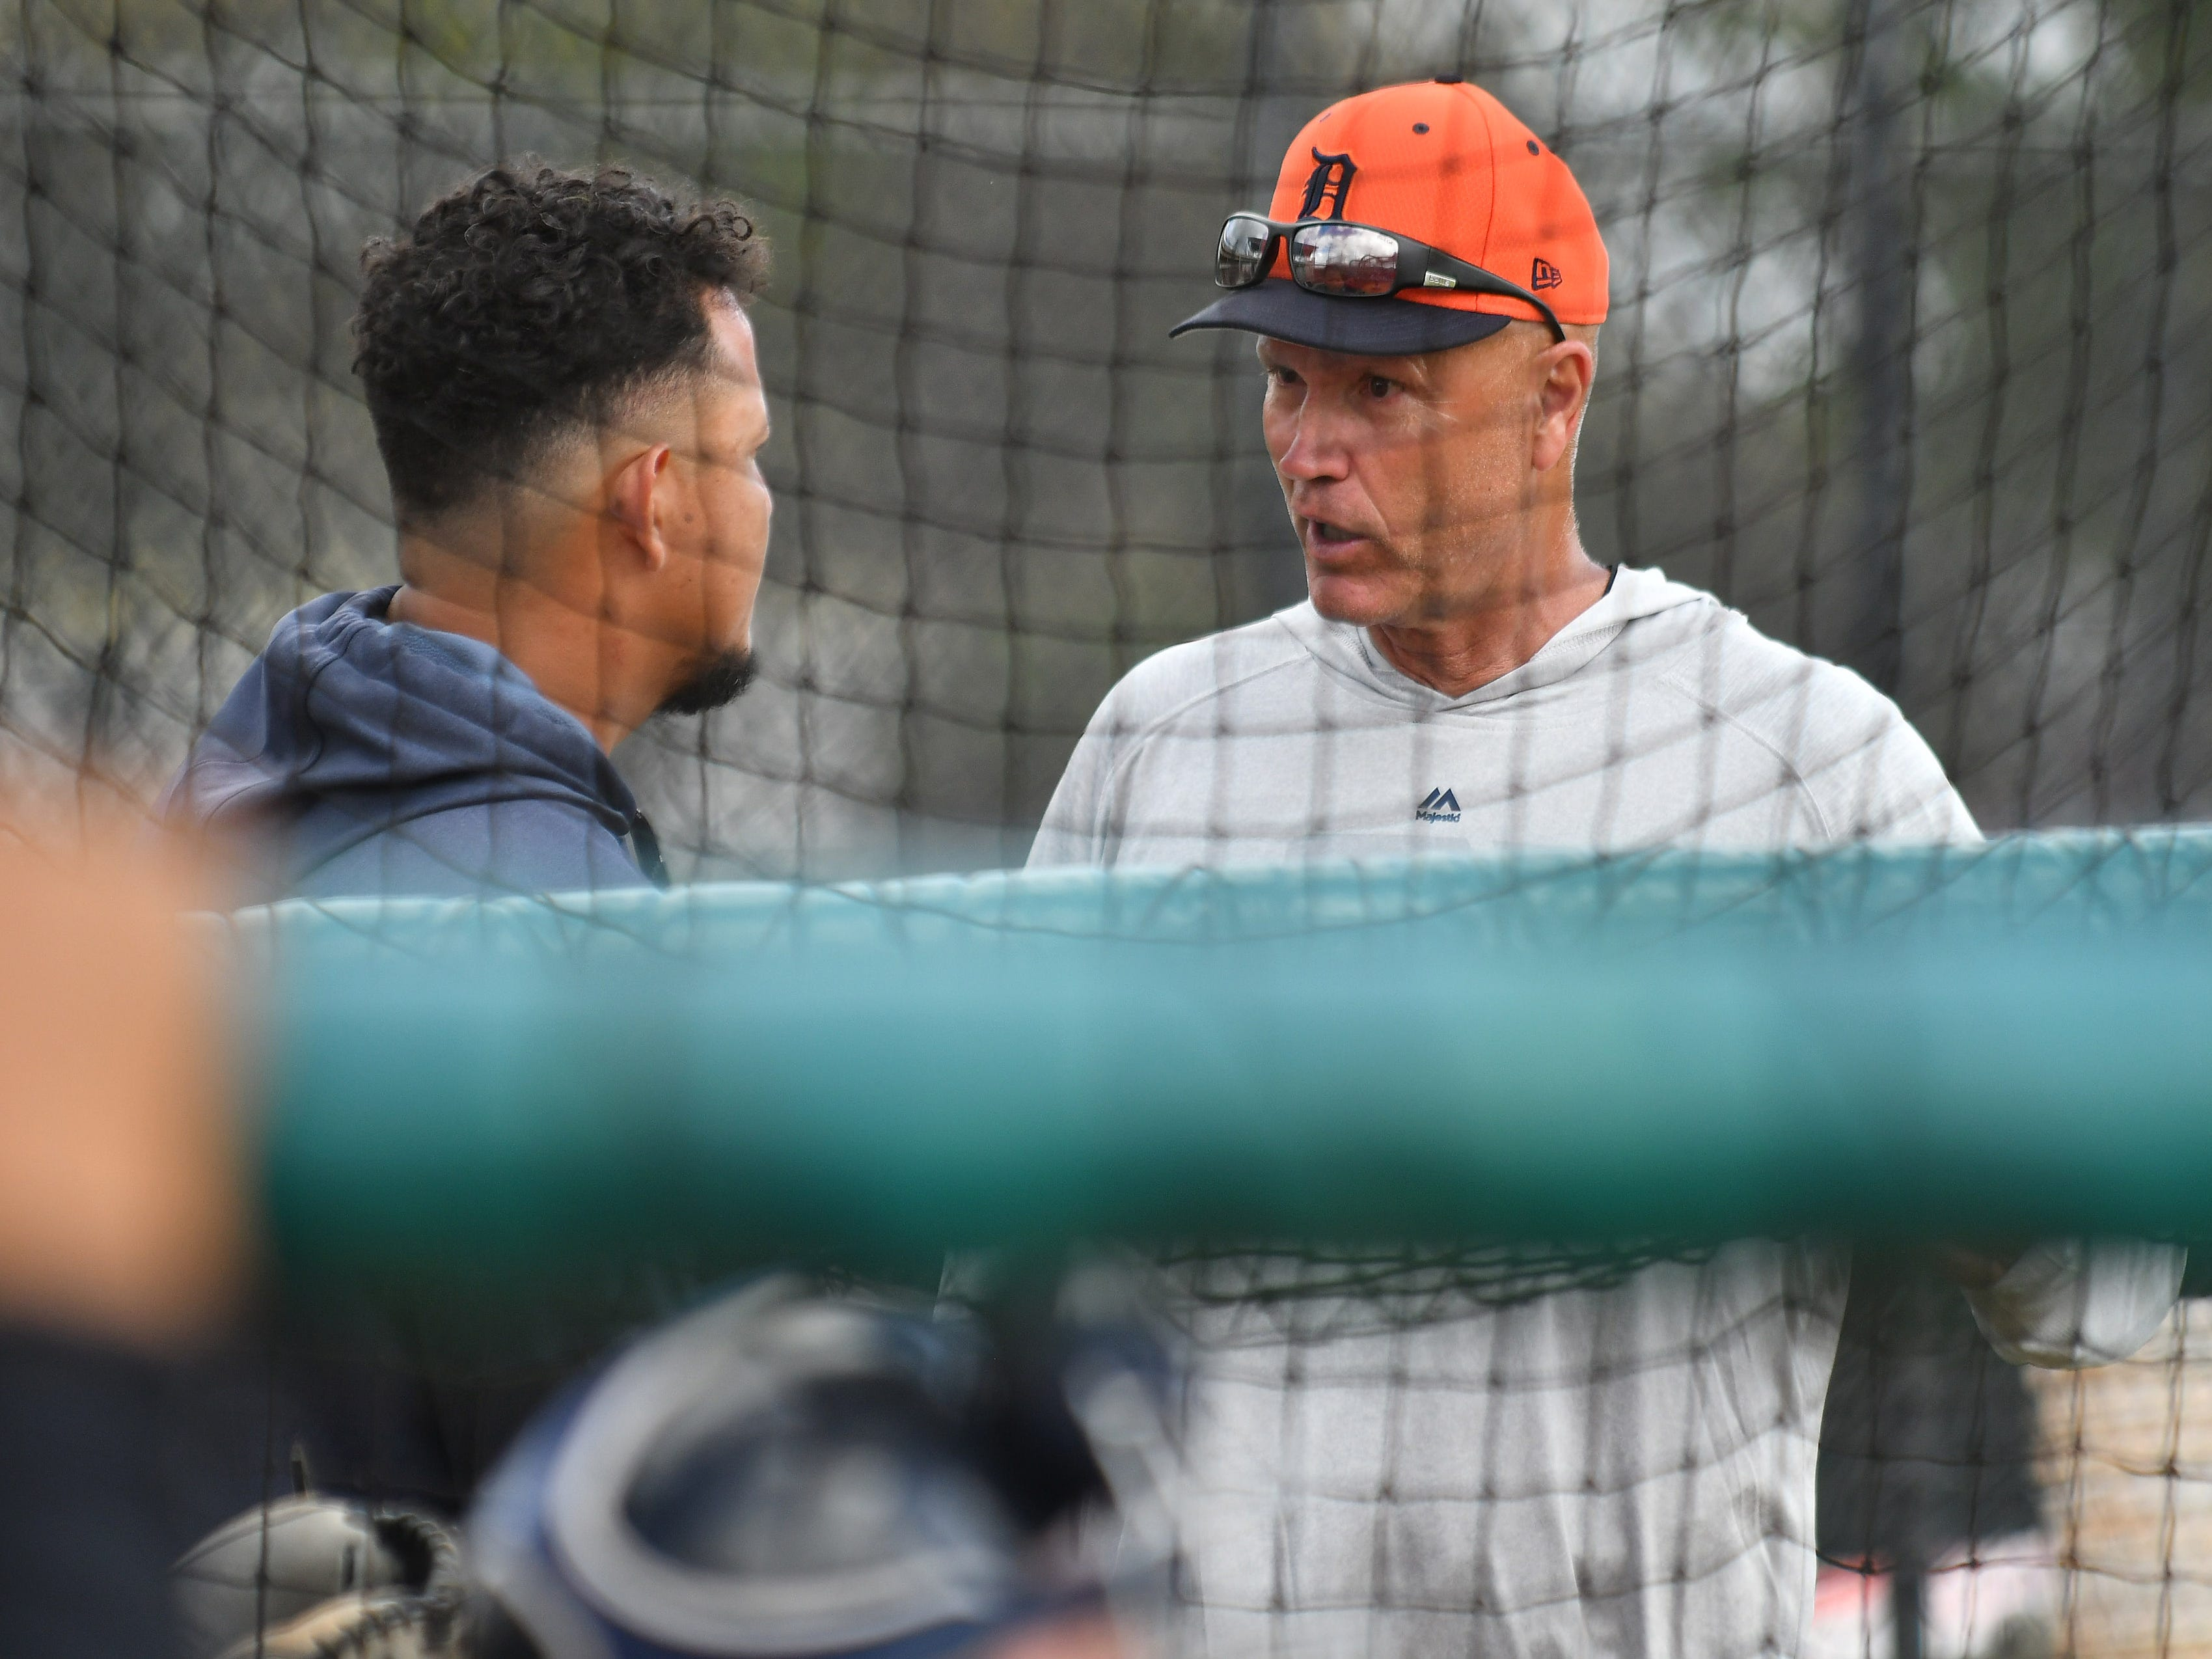 Tigers bench coach Steve Liddle talks with Miguel Cabrera during batting practice.